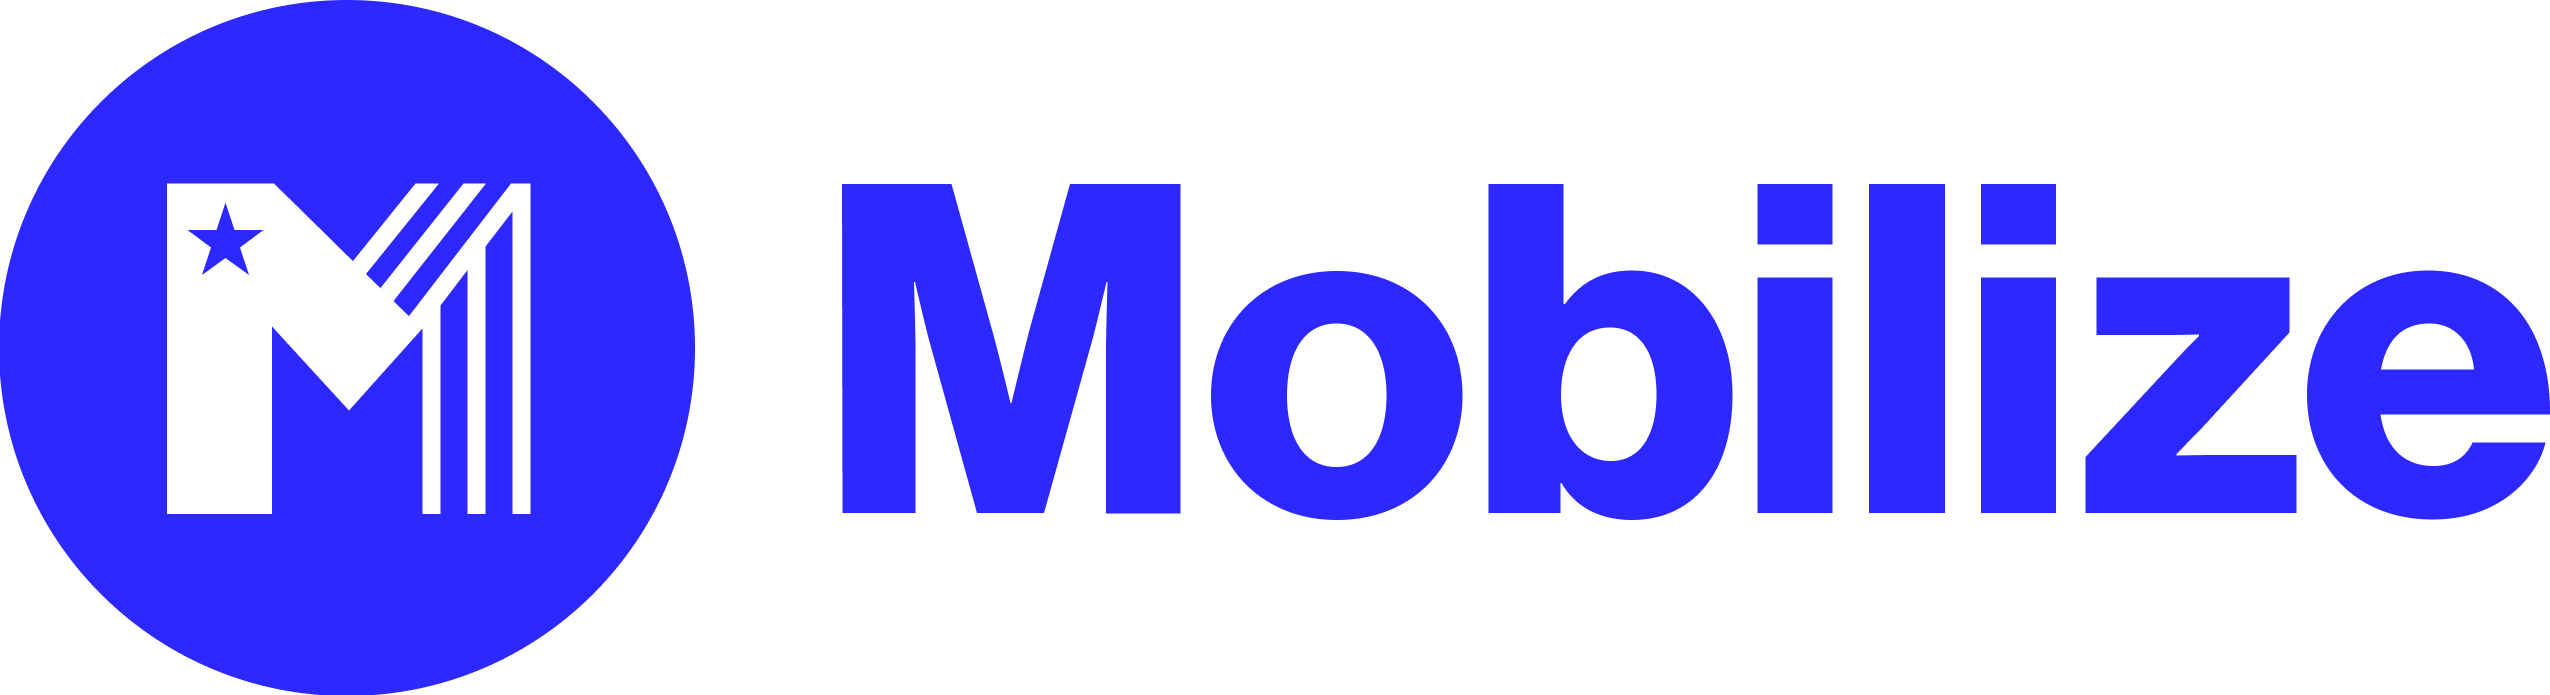 Mobilize Logo Blue circle background White letter M with a star and 3 white stripes